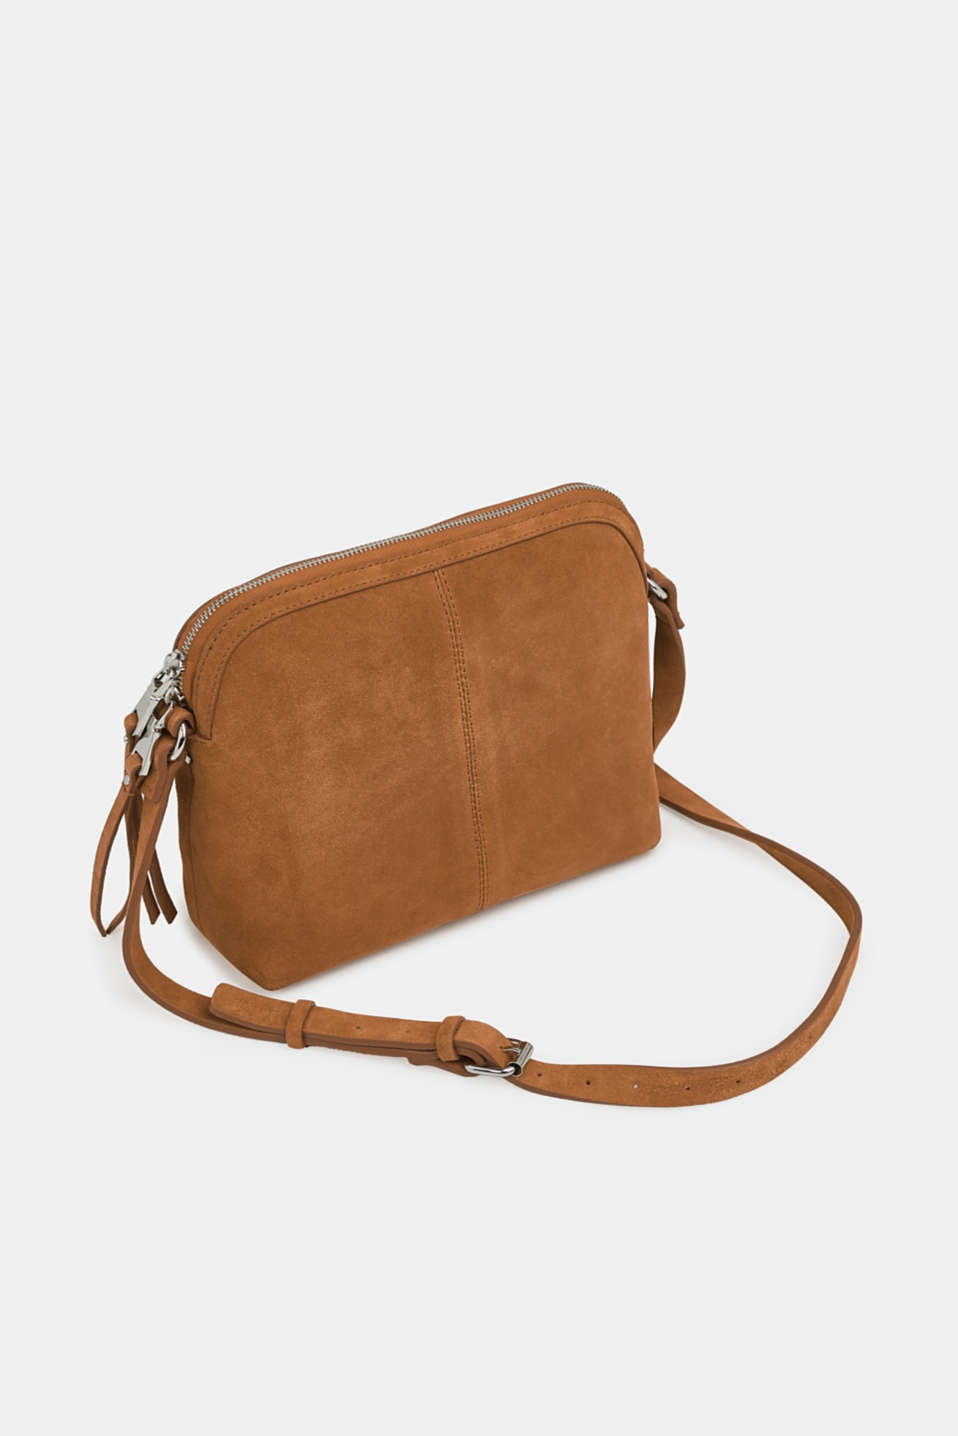 Suede shoulder bag, RUST BROWN, detail image number 2